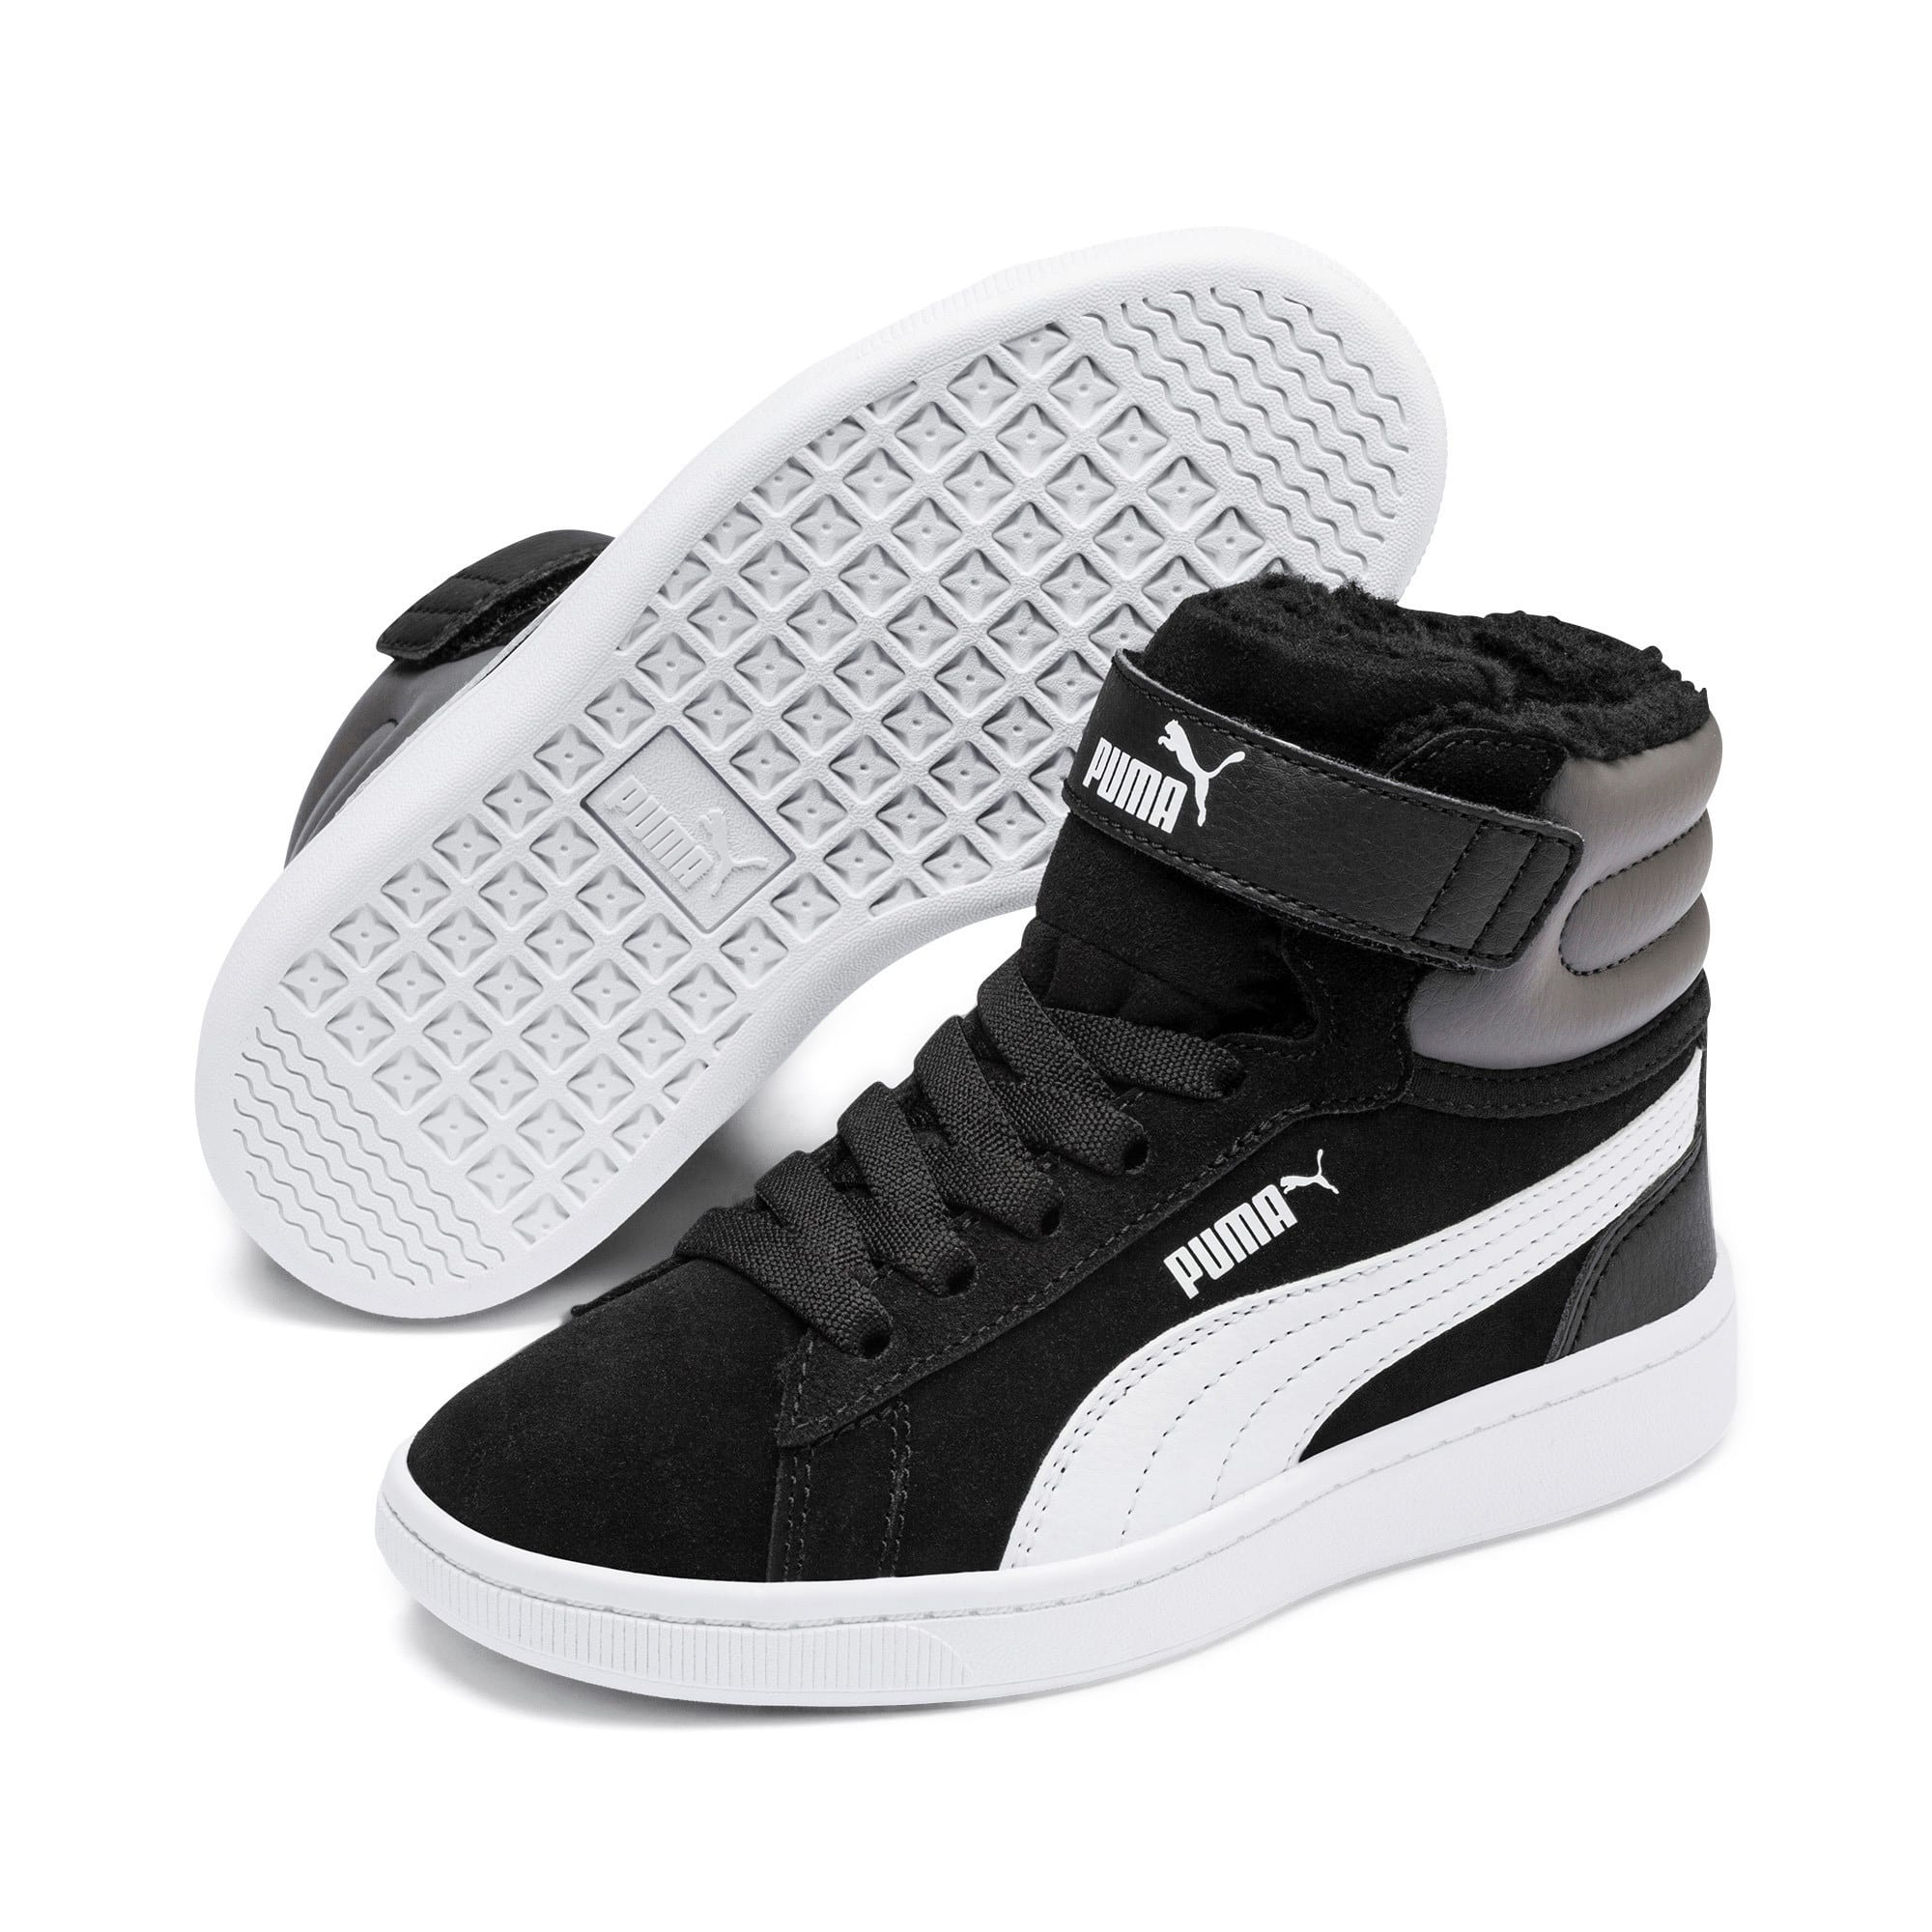 Thumbnail 2 of Vikky v2 Mid Fur V Kids' Trainers, Puma Black-CASTLEROCK-White, medium